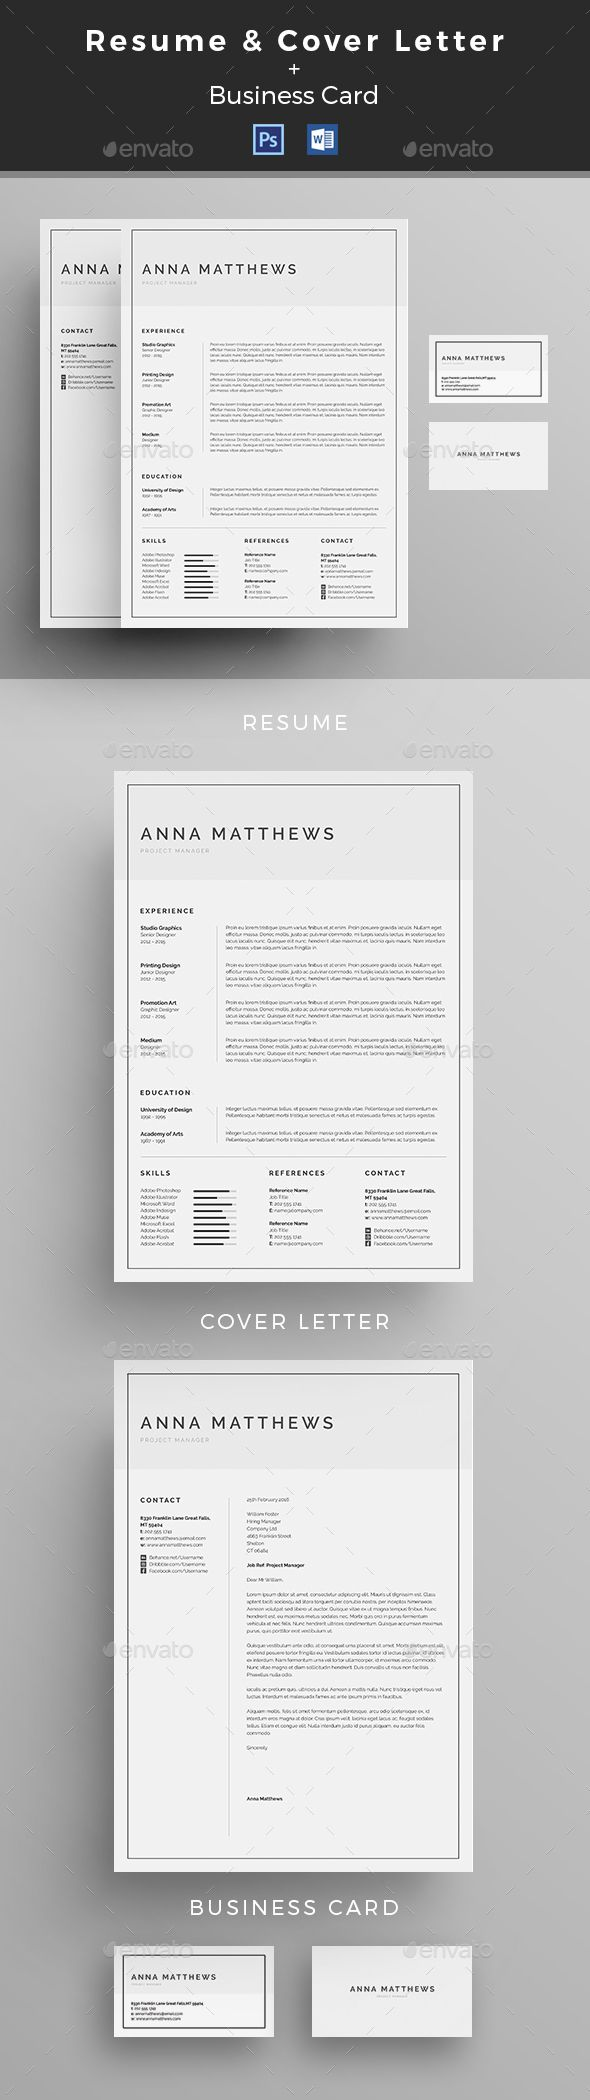 best ideas about cover letter design resume minimal resume cv template psd ms word more